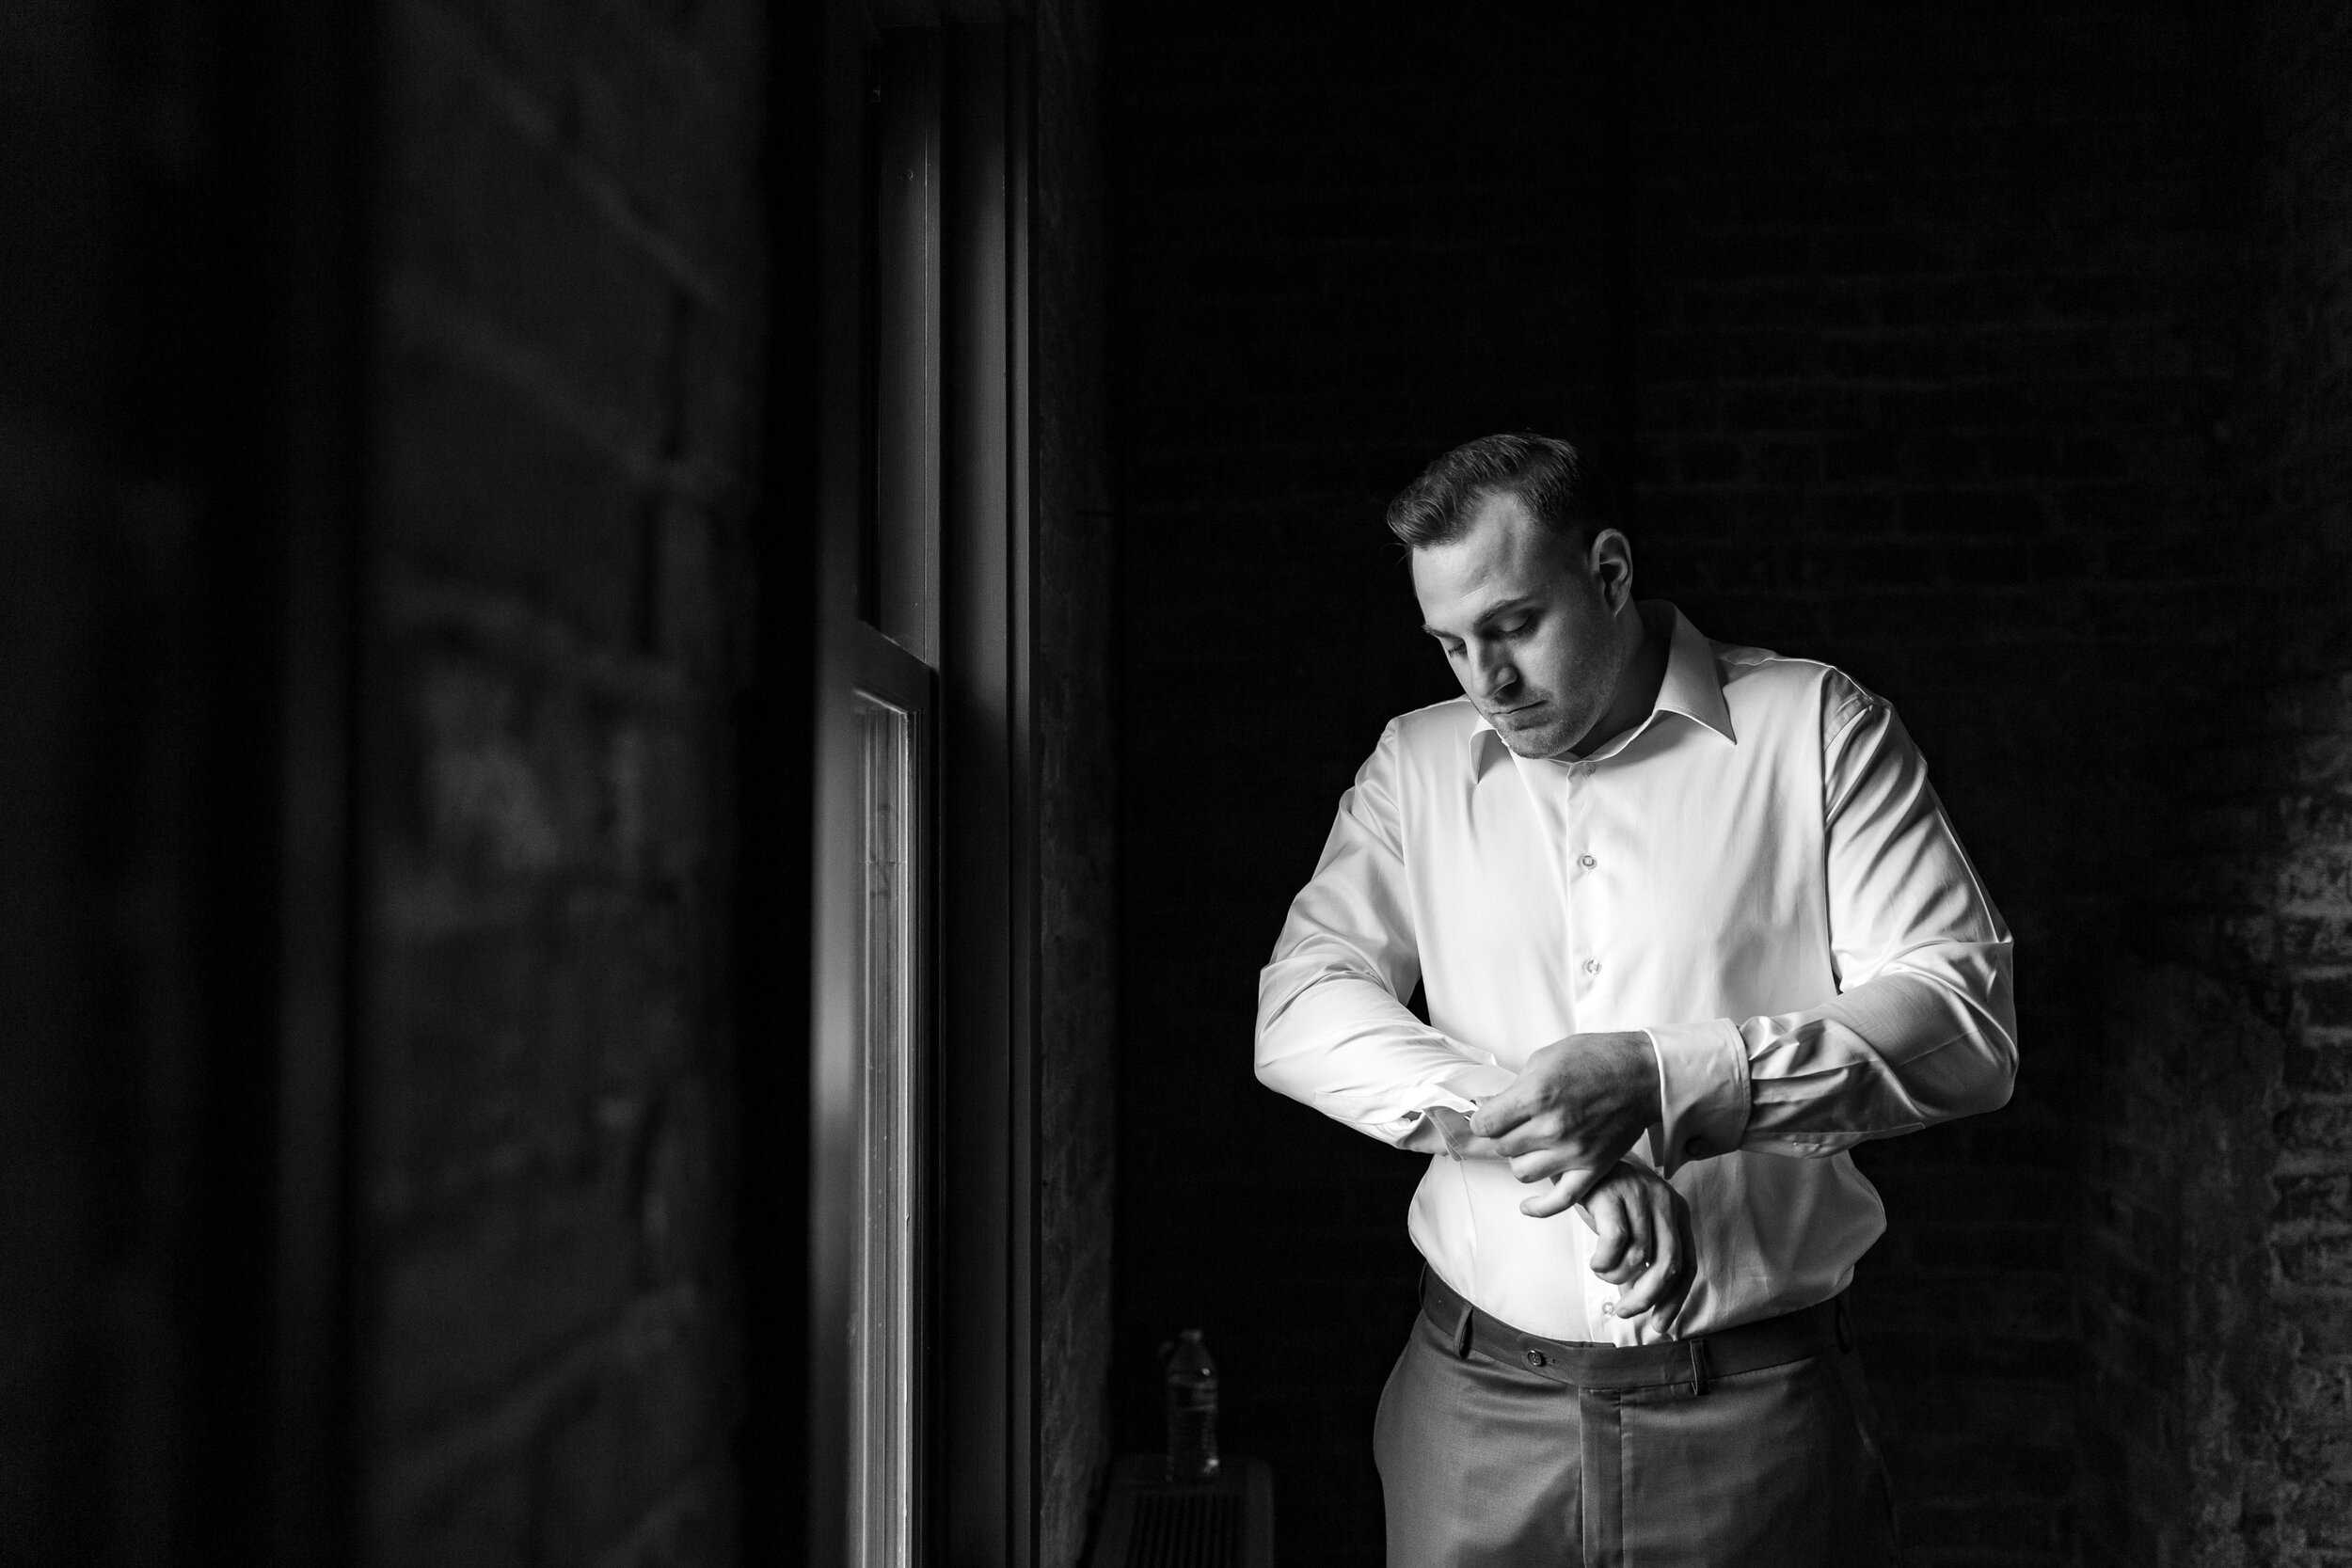 Groom doing cuff links in dramatic window light at Riverview at Occoquan